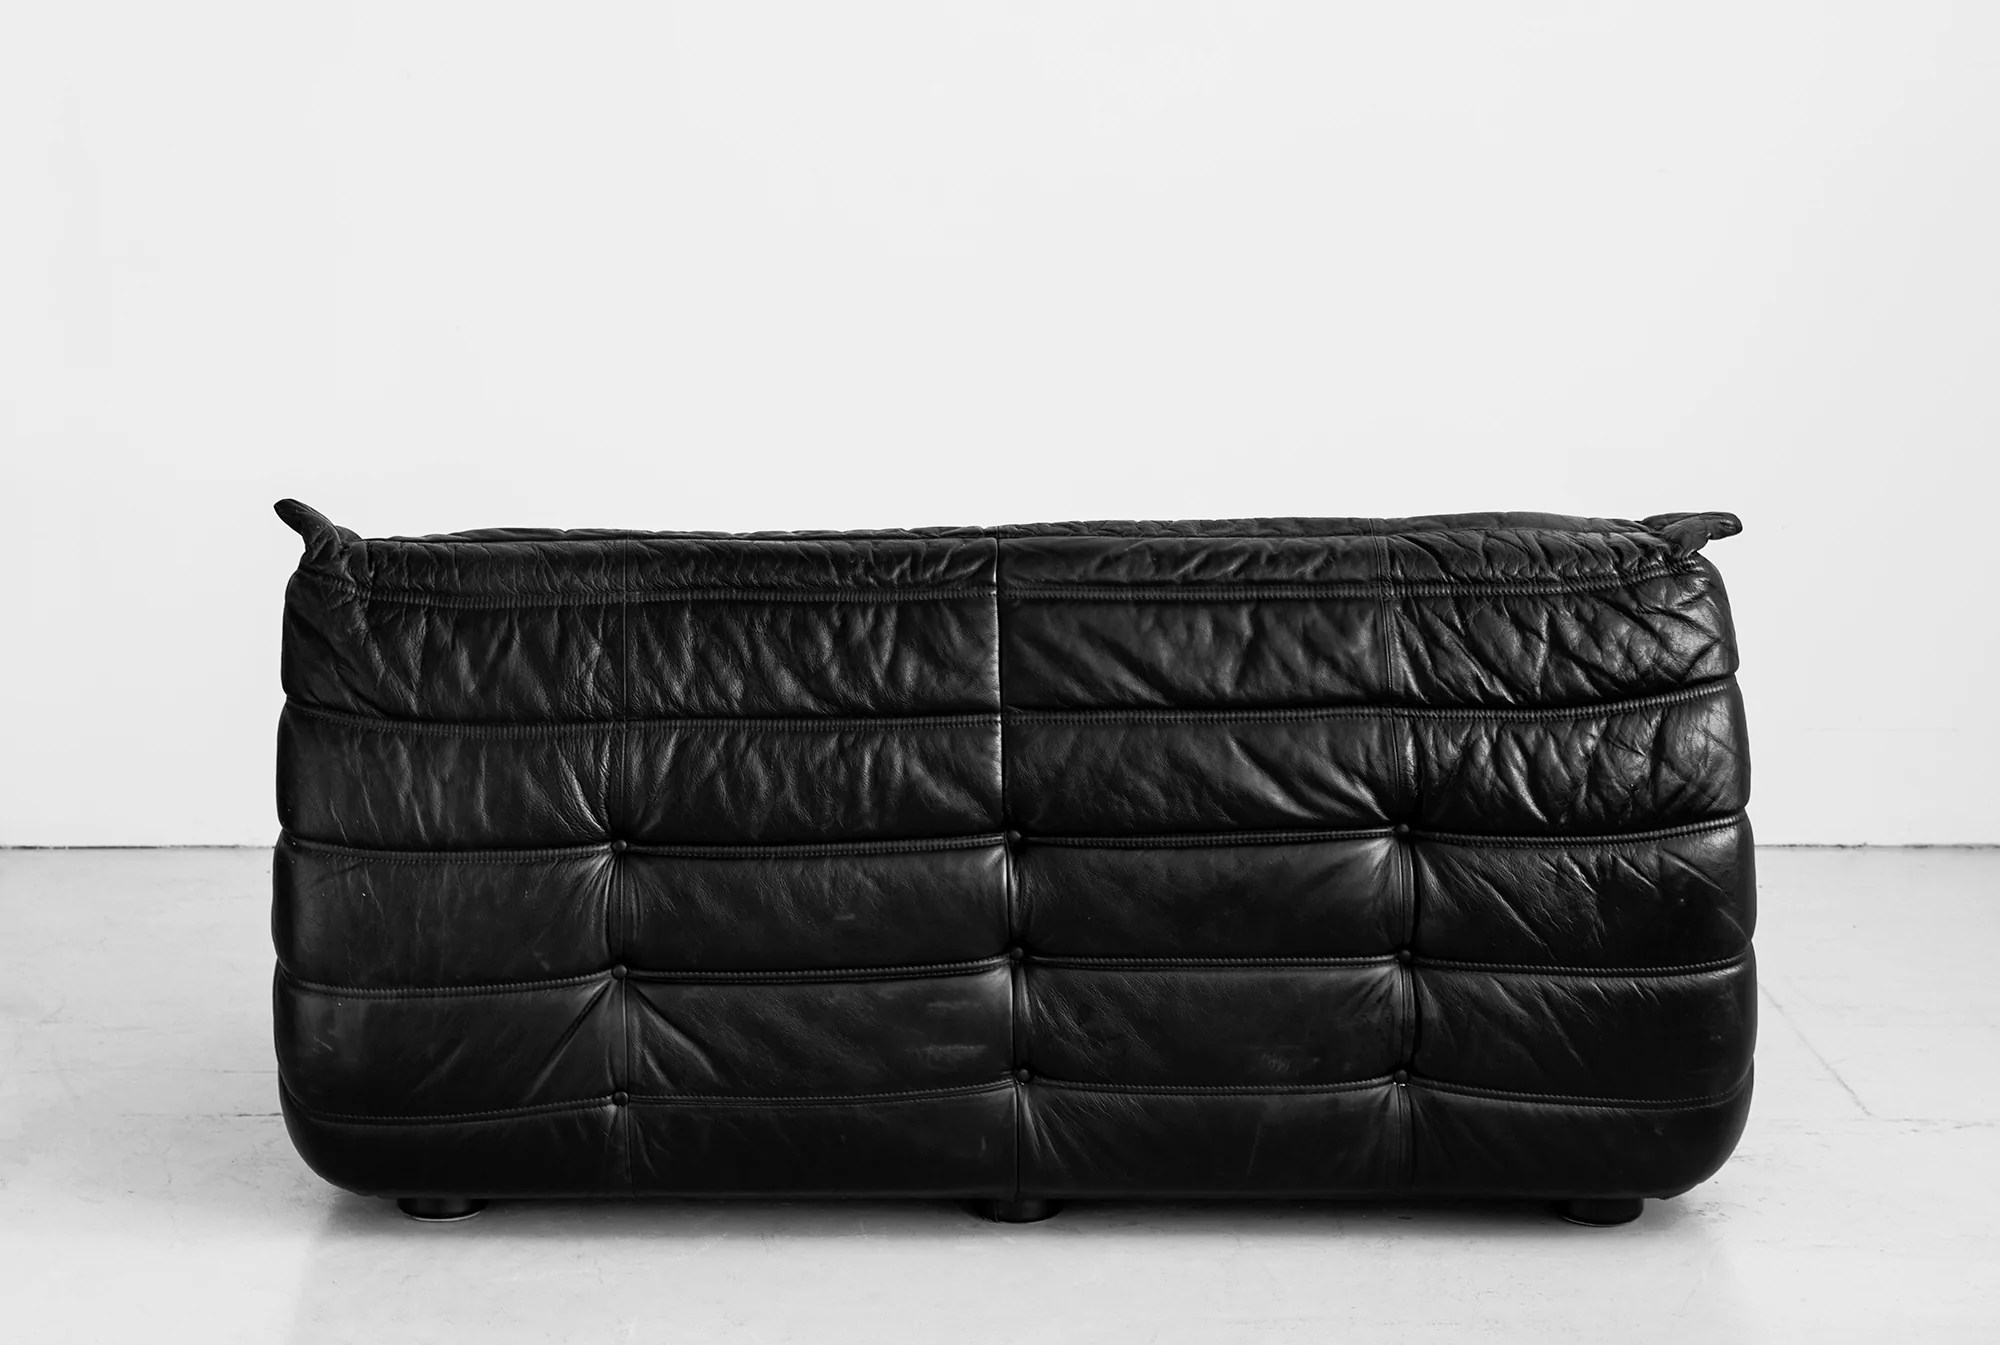 Togo Sofa Togo Sofa By Michel Ducaroy For Ligne Roset